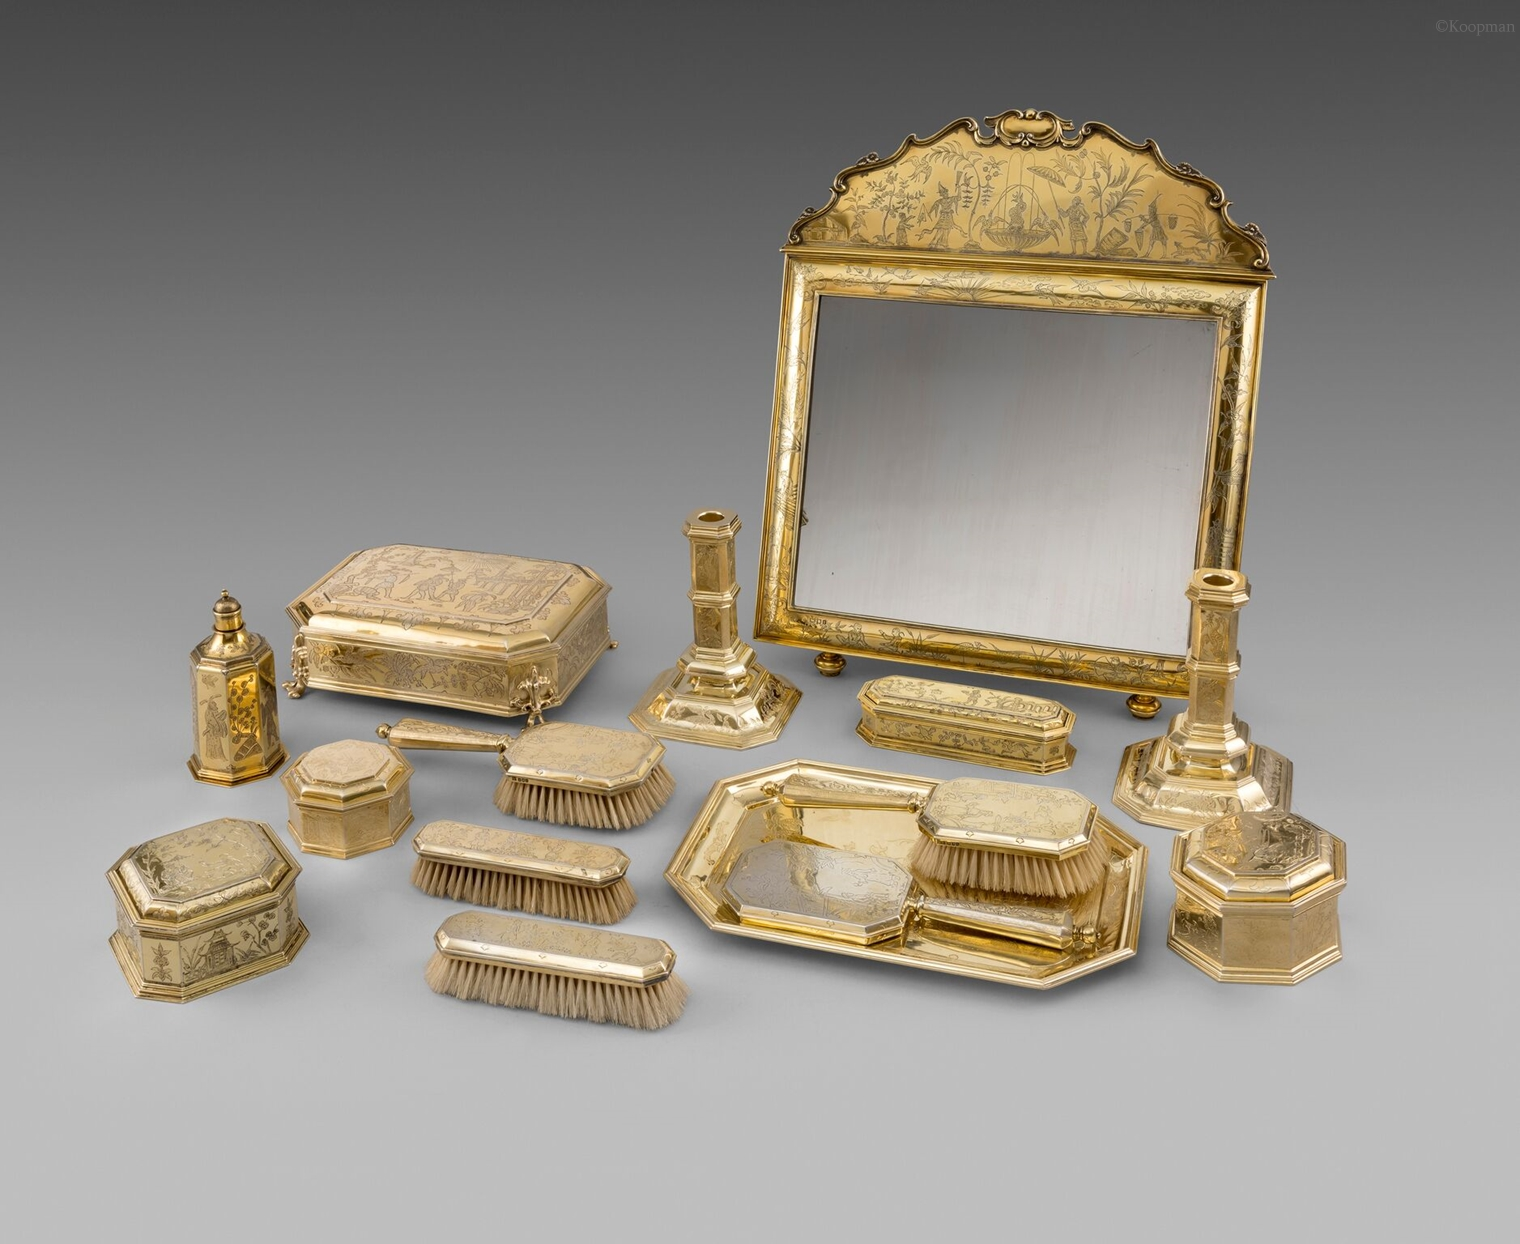 A Silver-Gilt Dressing Table Set